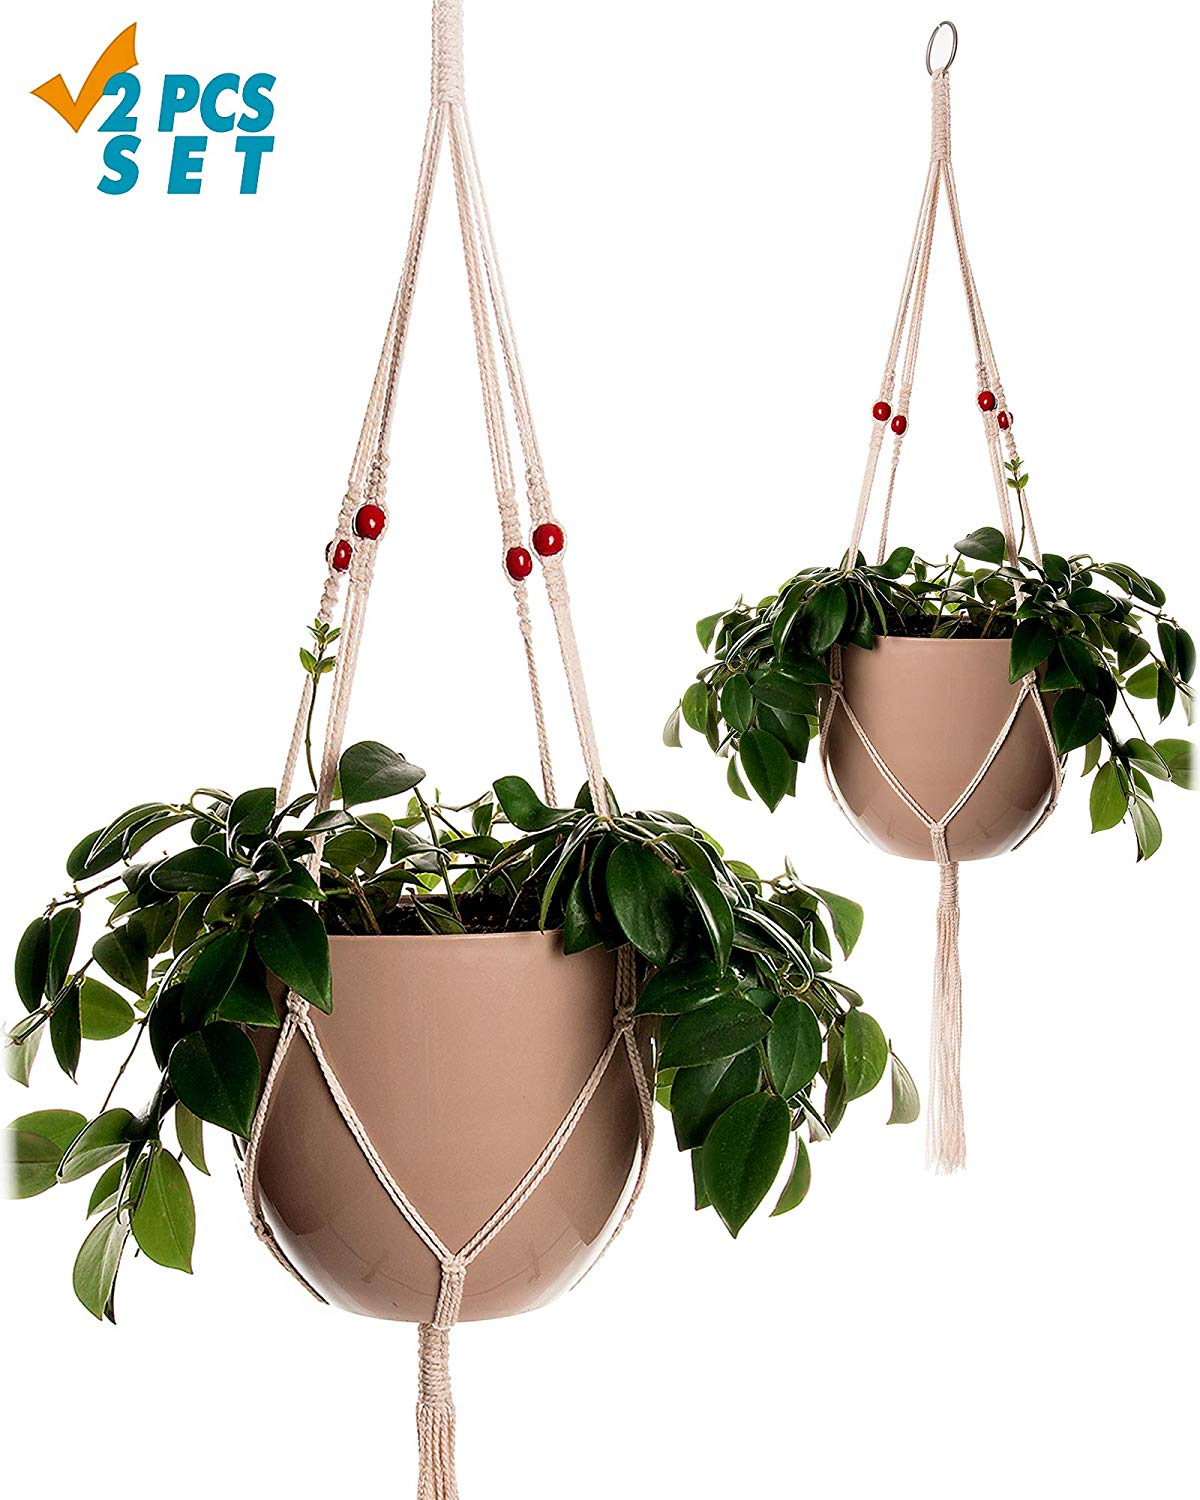 Plant Hanger Macrame 38in Pure Cotton Rope with Red Wooden Beads Indoor Outdoor Decoration Handmade Hanging Planter Basket Round & Square Flower Herbs Pots (no Pots no Plants) 4 Legs, 2 Pack